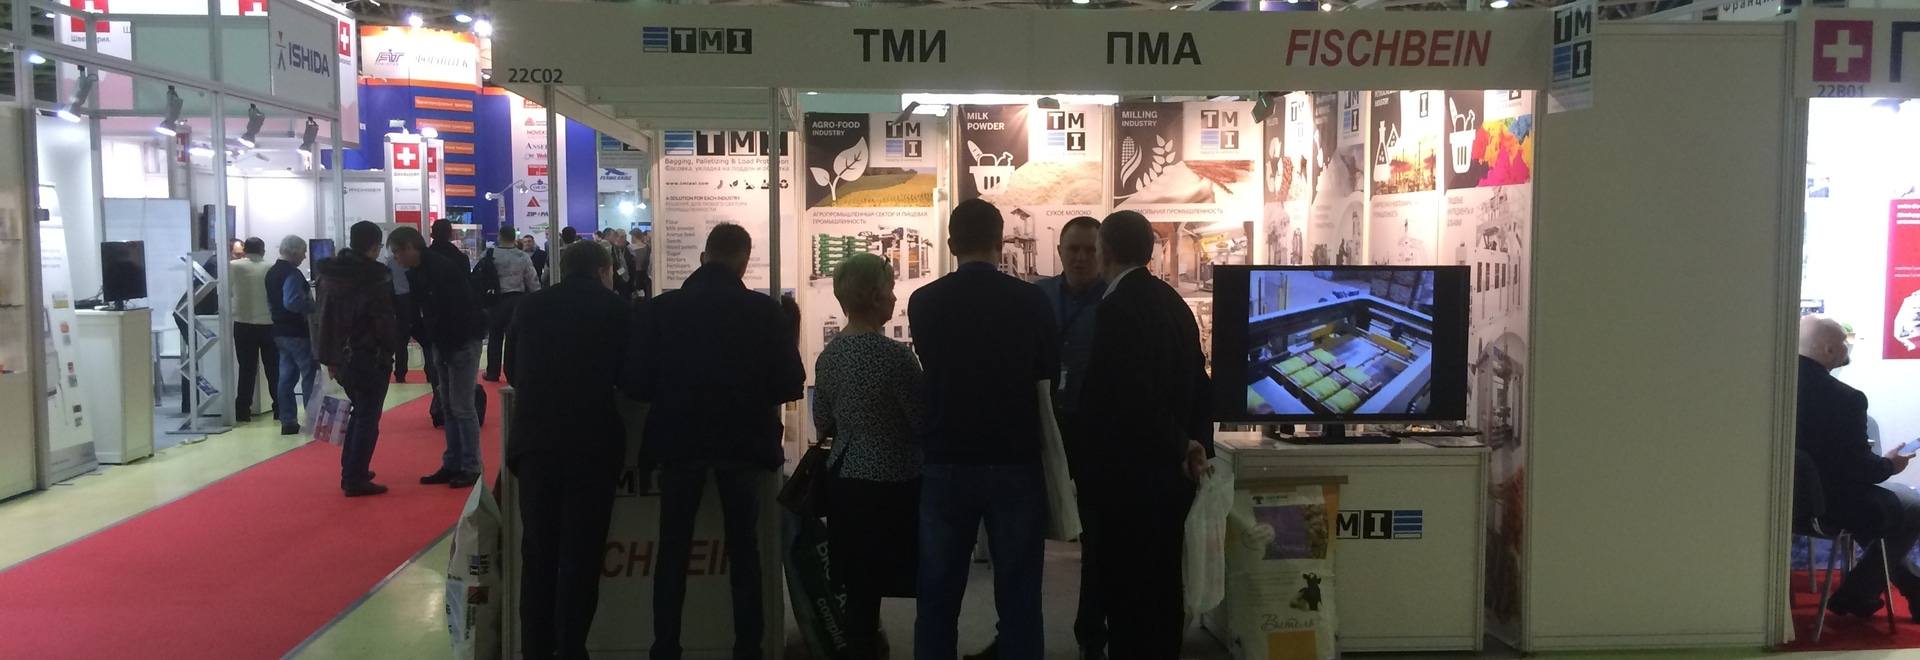 TMI PRESENTS ITS PORTFOLIO AT THE LARGEST PACKAGING FAIR IN RUSSIA